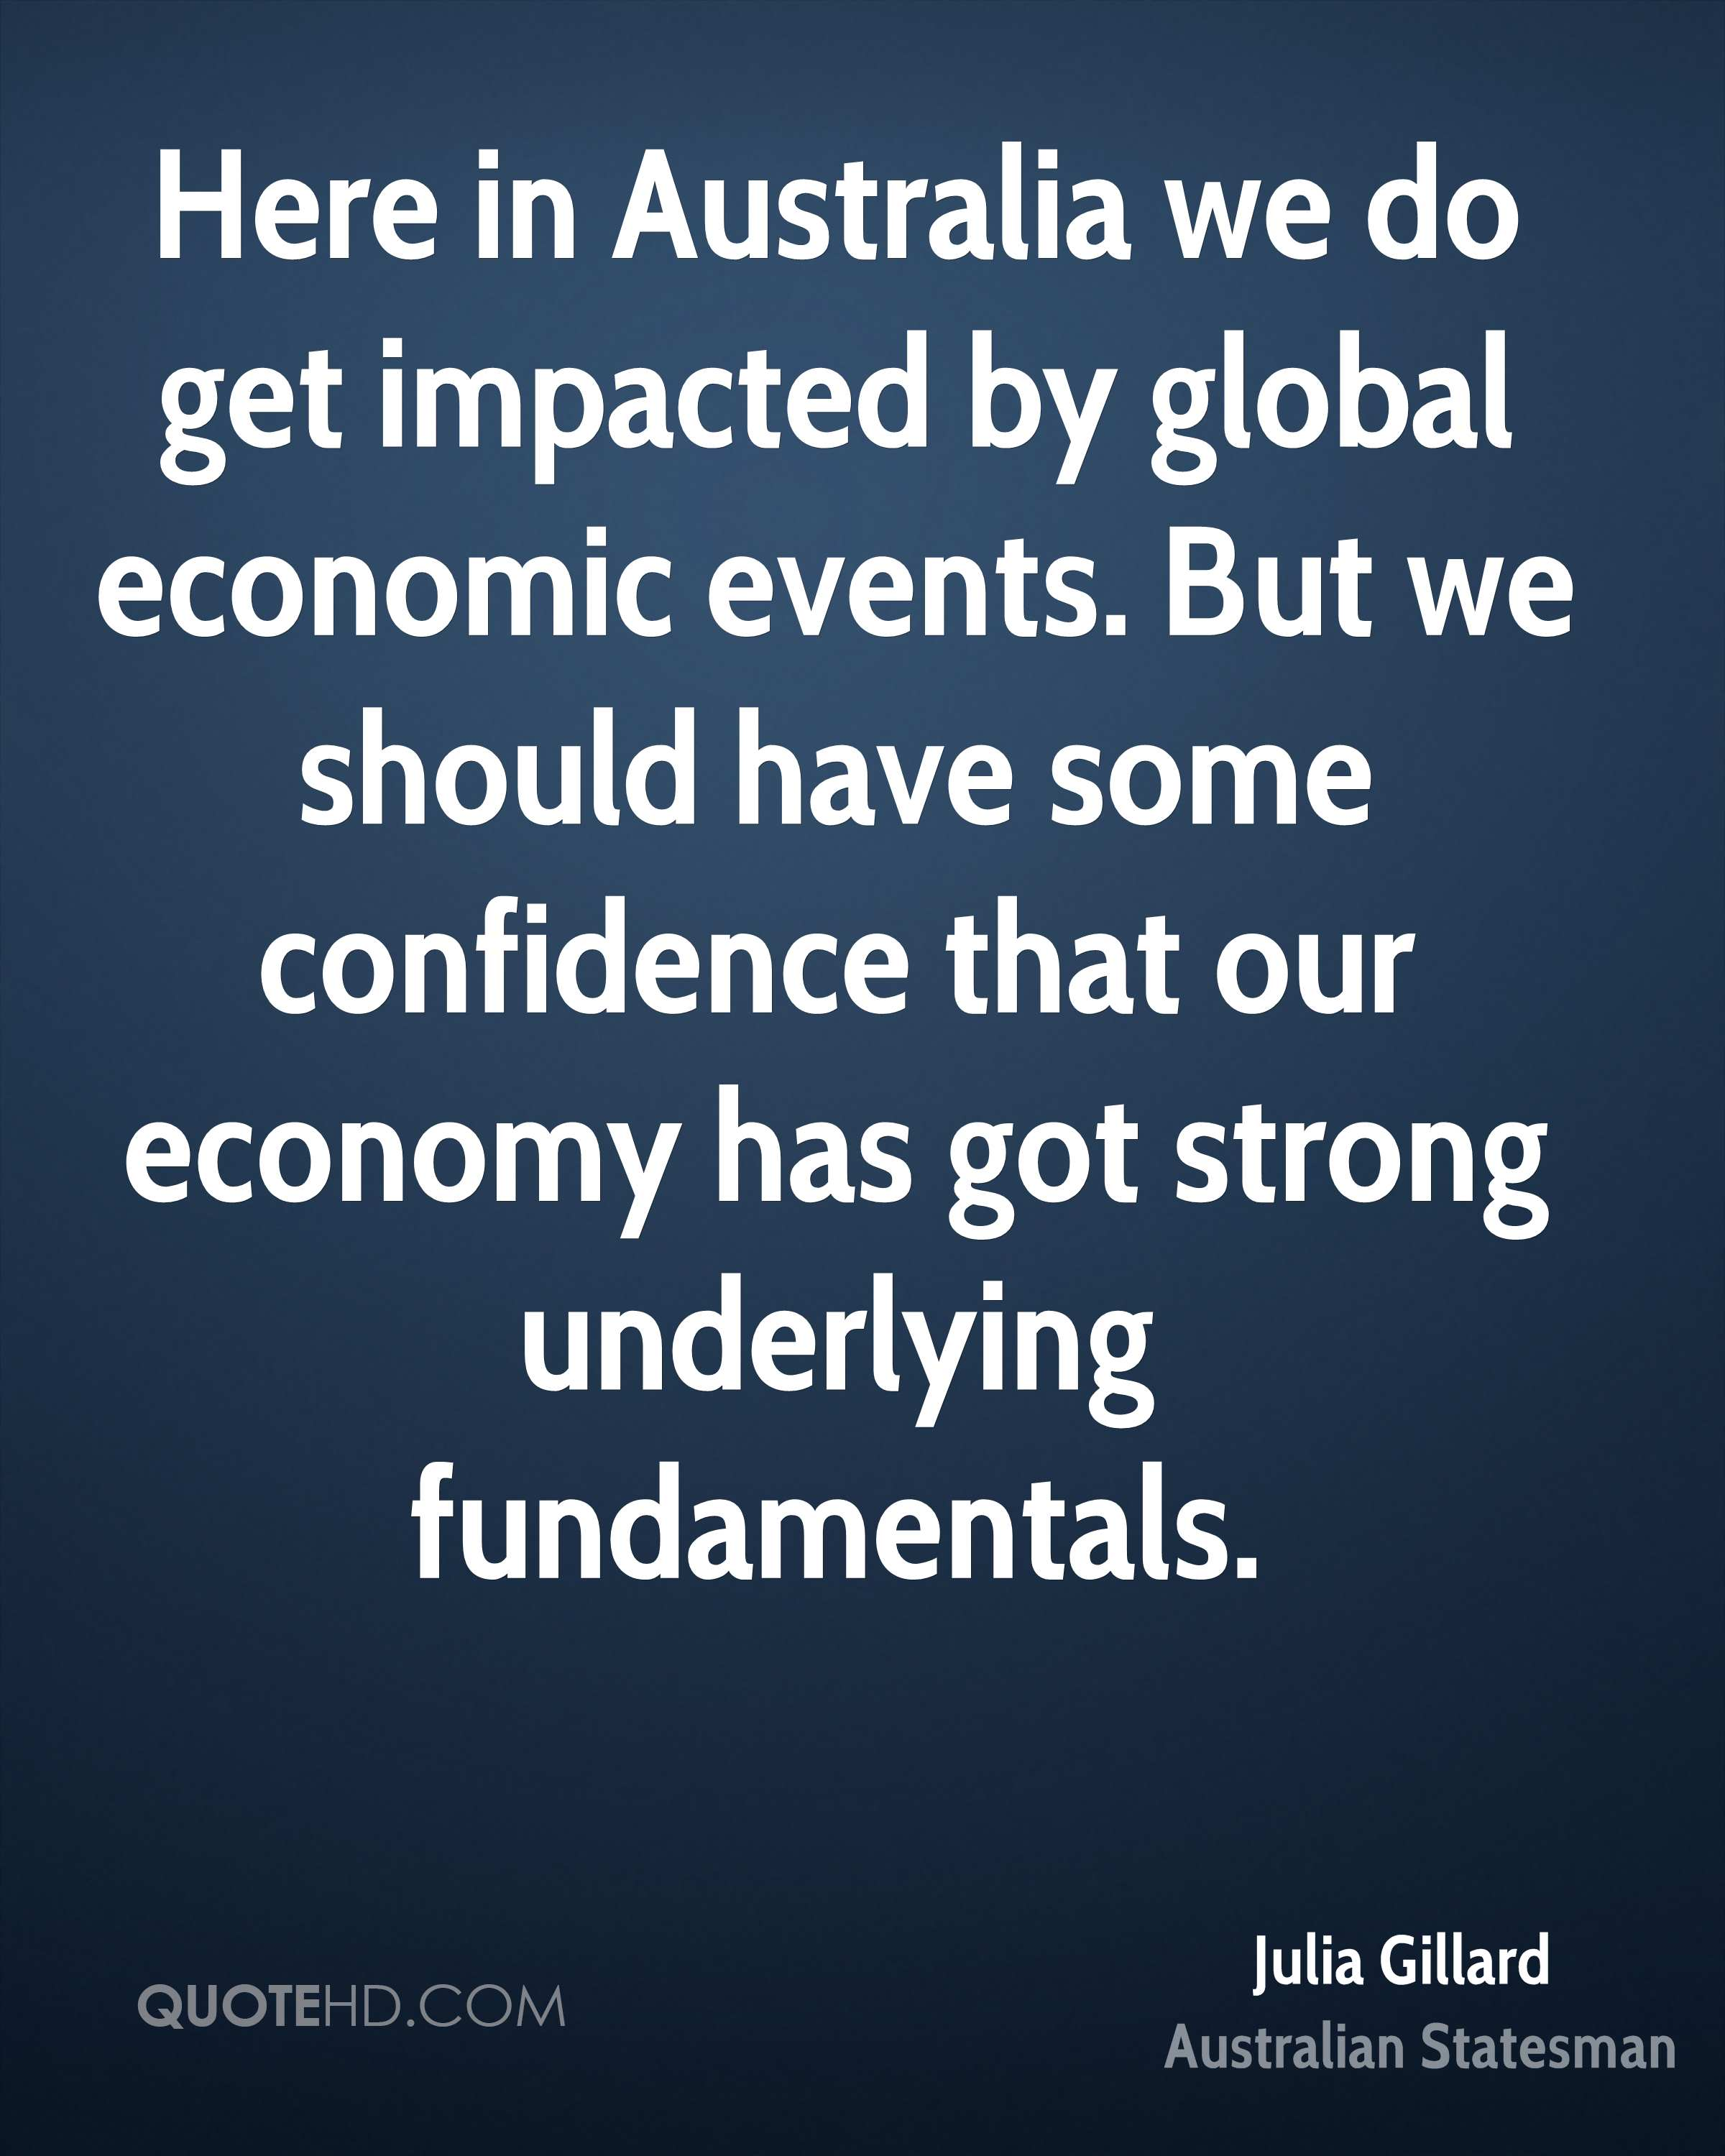 Here in Australia we do get impacted by global economic events. But we should have some confidence that our economy has got strong underlying fundamentals.